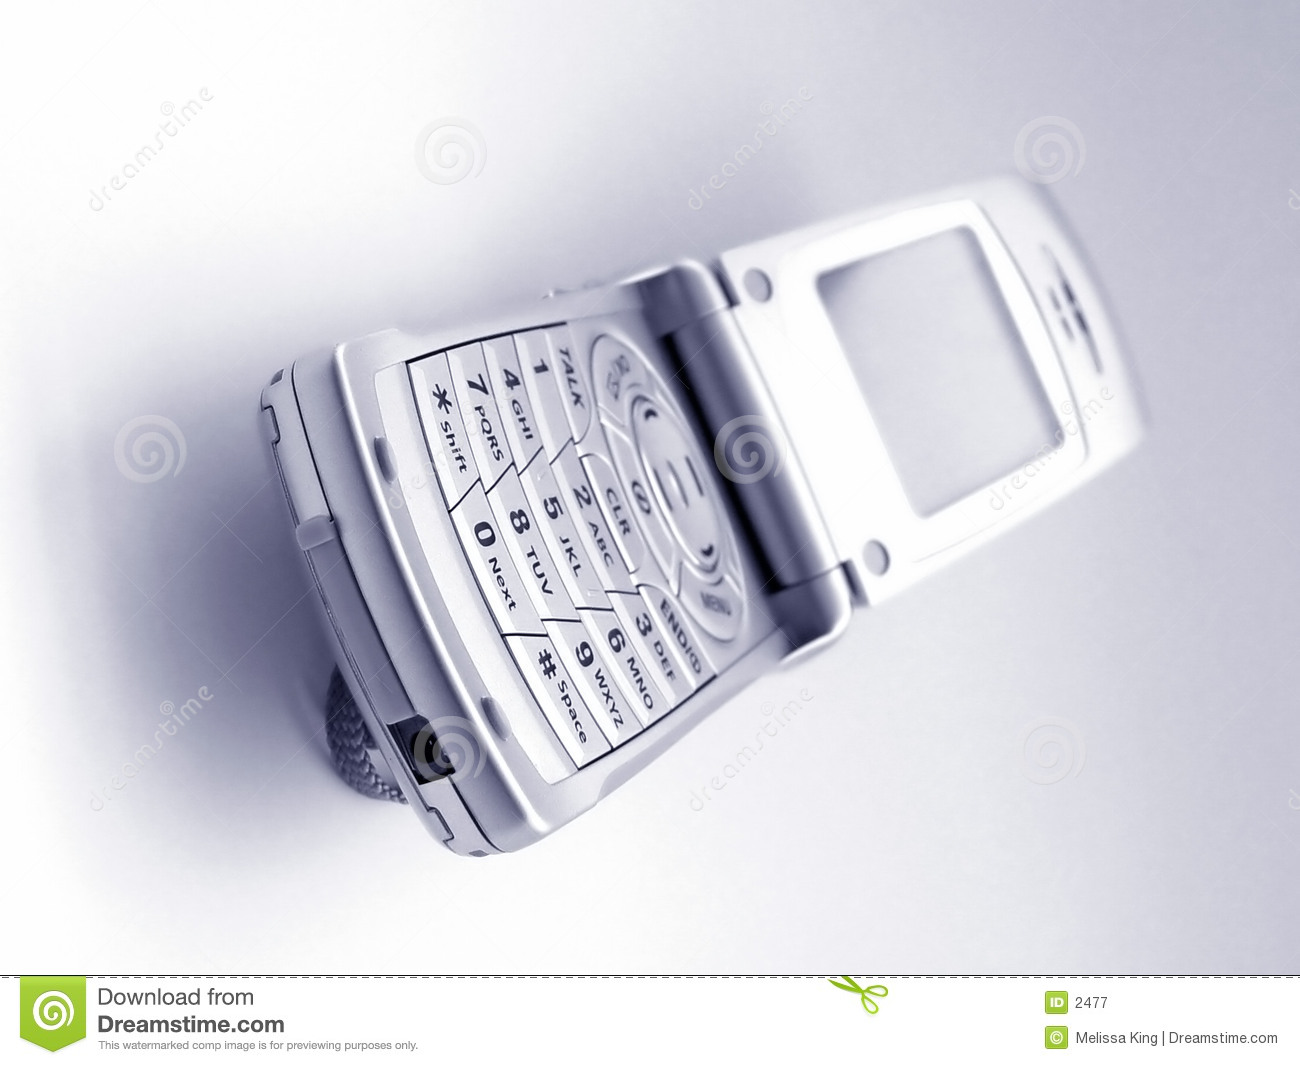 Full Cell Phone